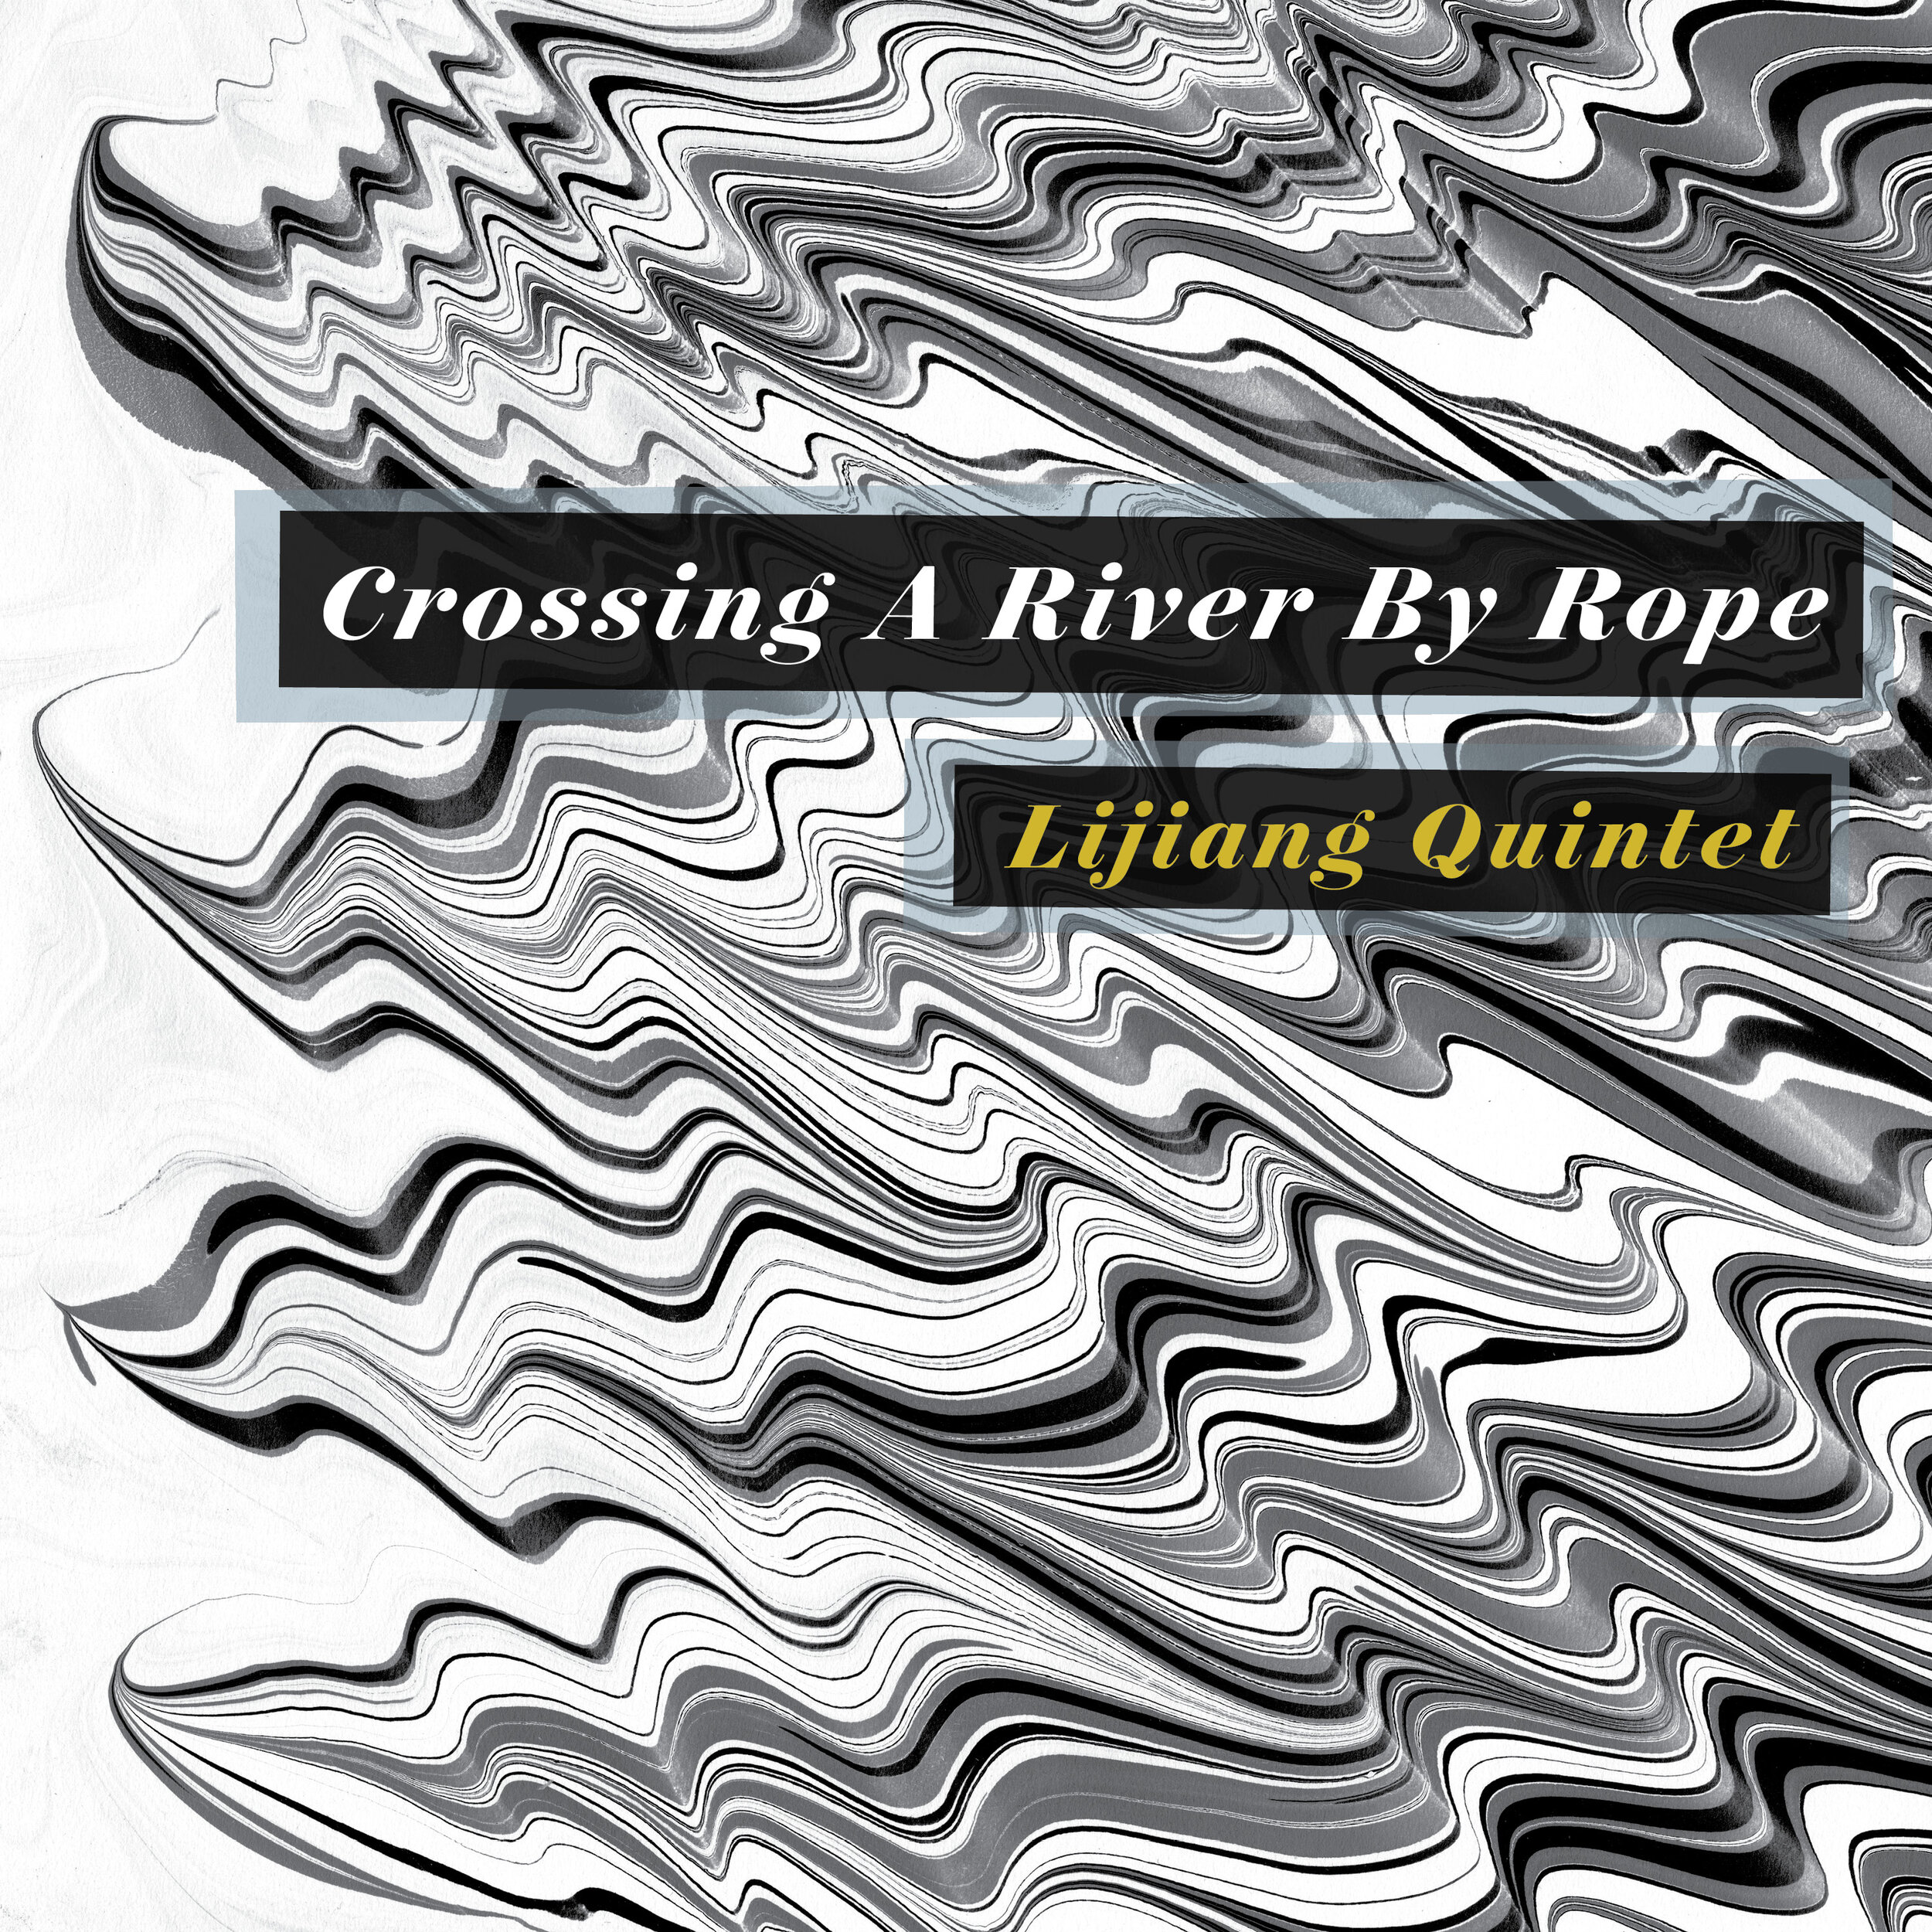 FCSL-003 CROSSING A RIVER BY ROPE, Lijiang Quintet